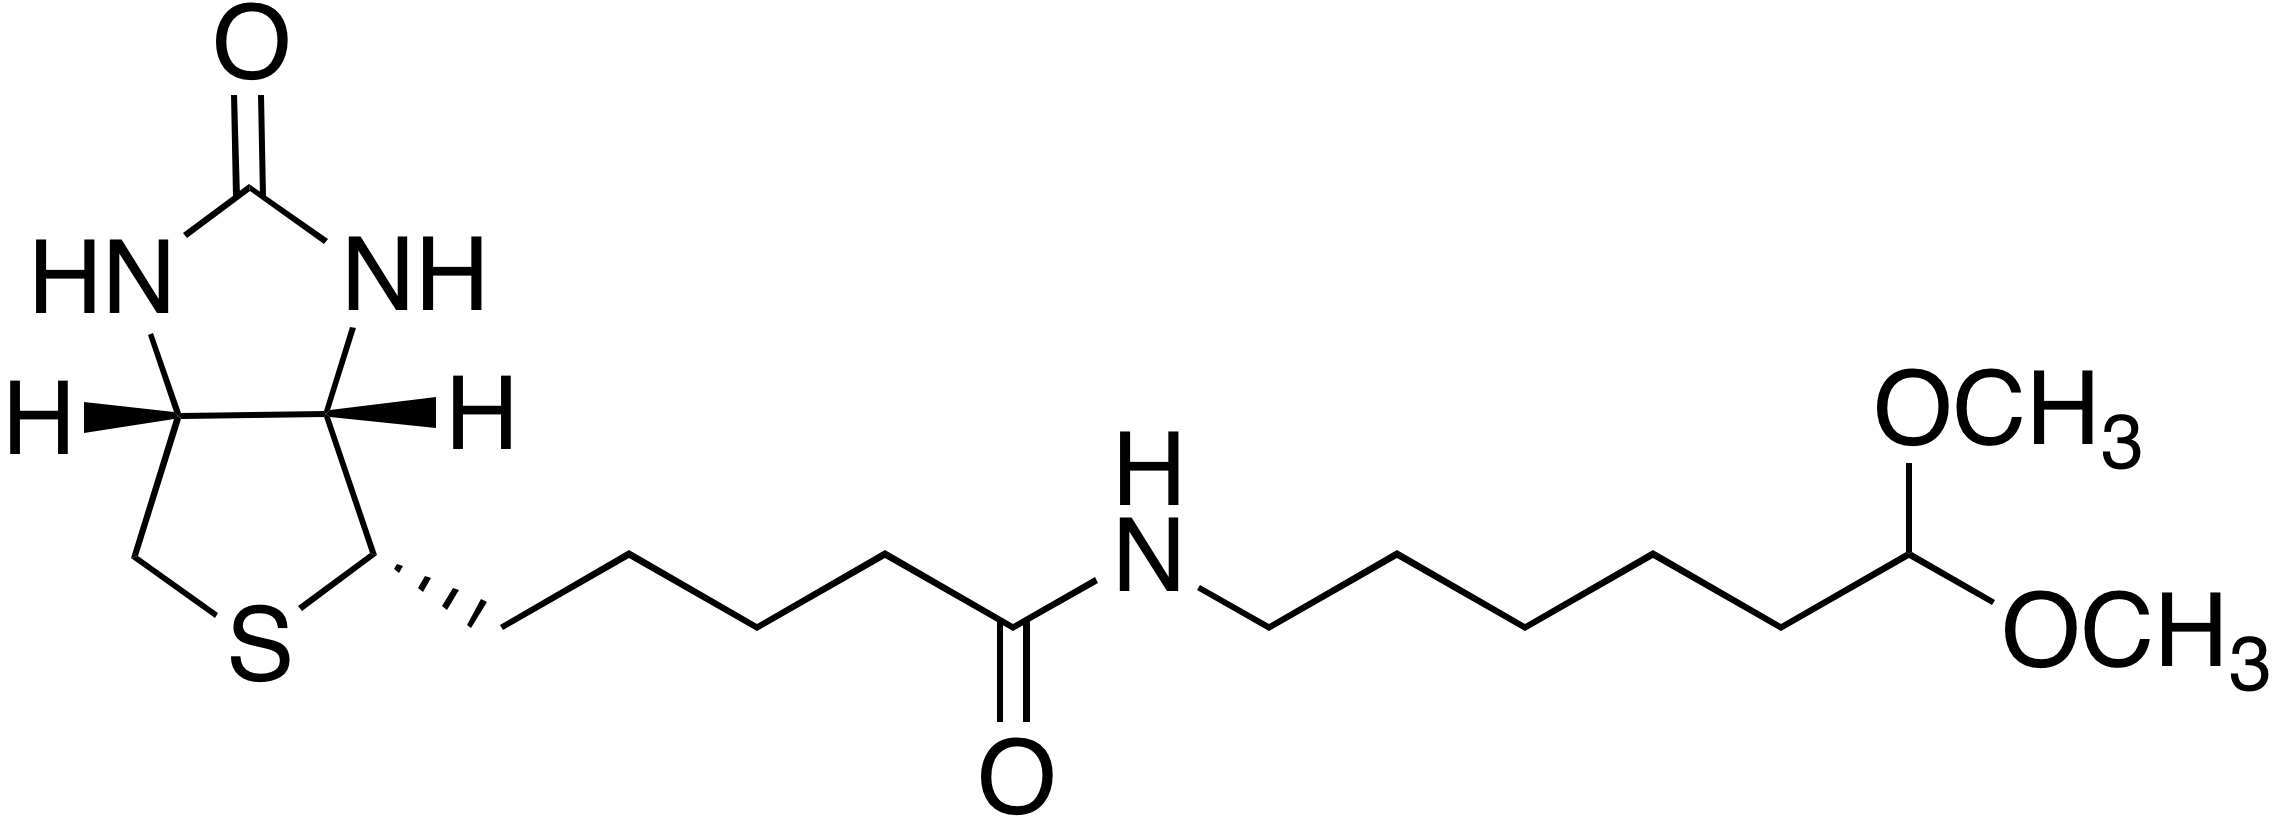 N-(6,6-Dimethoxyhexyl)biotinamide